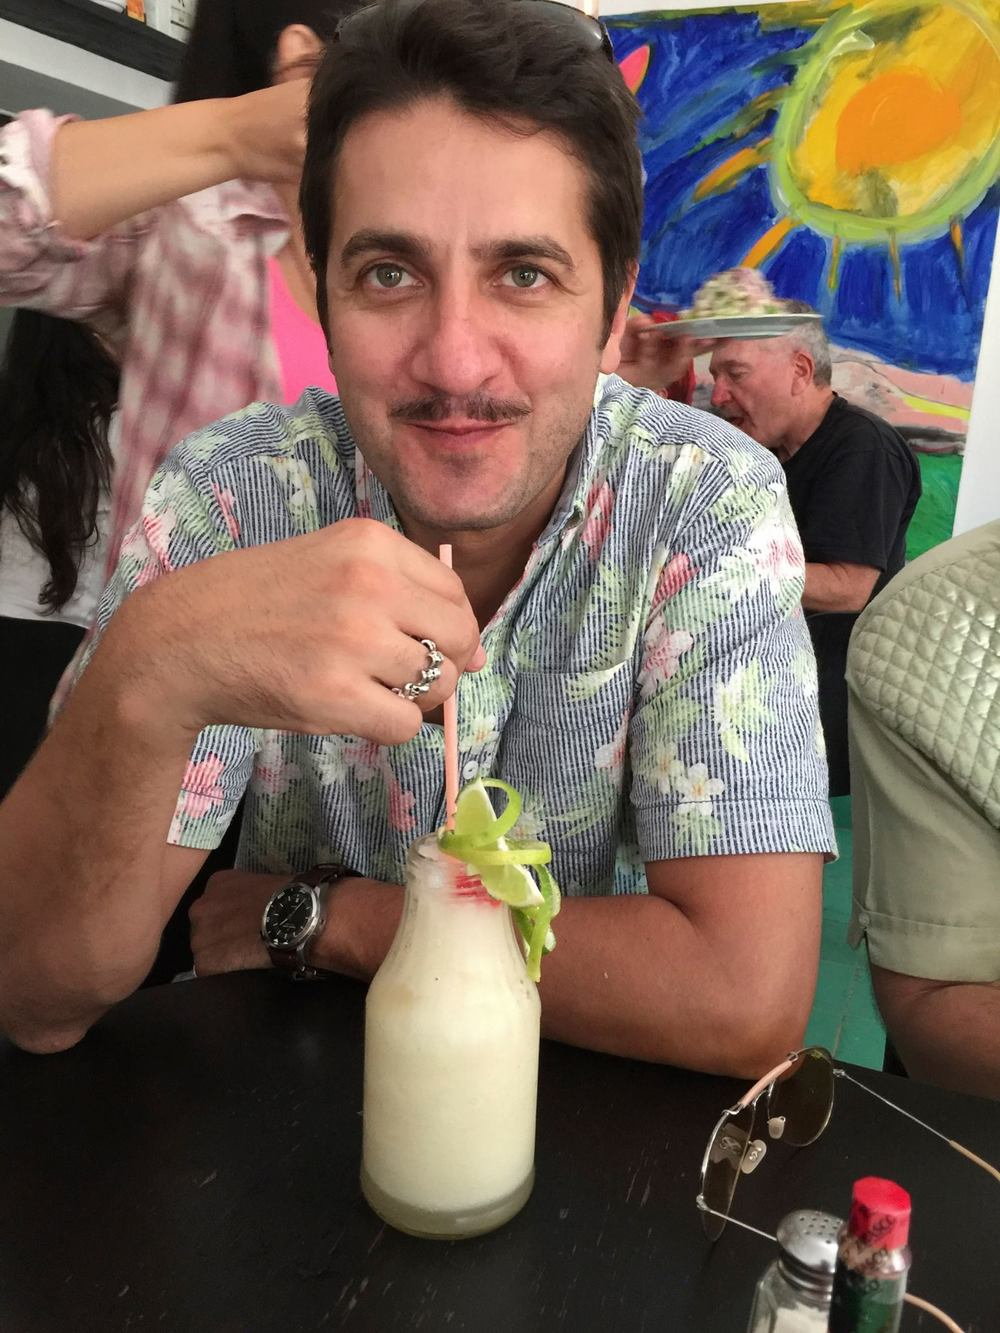 When Havana Club Rum is cheaper than water, the drinks were unbelievably good. Just 2 minutes after ridiculing Wiley for wanting a daiquiri, I switched to these lemon daiquiris which were probably the best drink of the entire vacation. And as for Emre, he pulled Cuba off in inspiring fashion. Look at that creepy mustache and floral print shirt. He's got CIA written all over him.